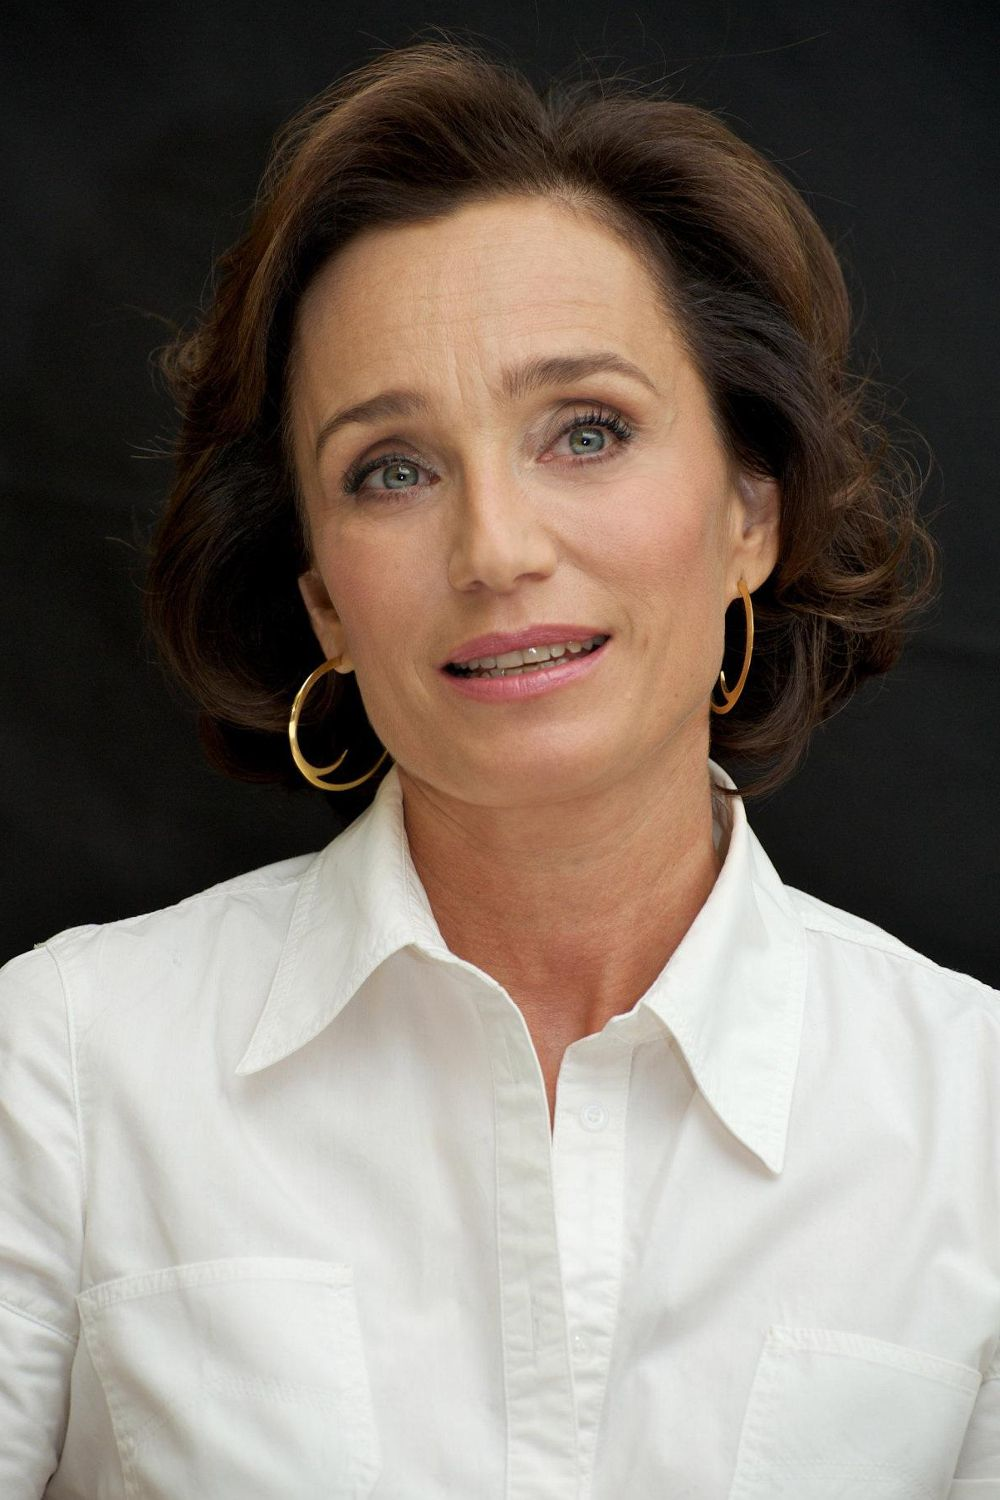 images Kristin Scott Thomas (born 1960)